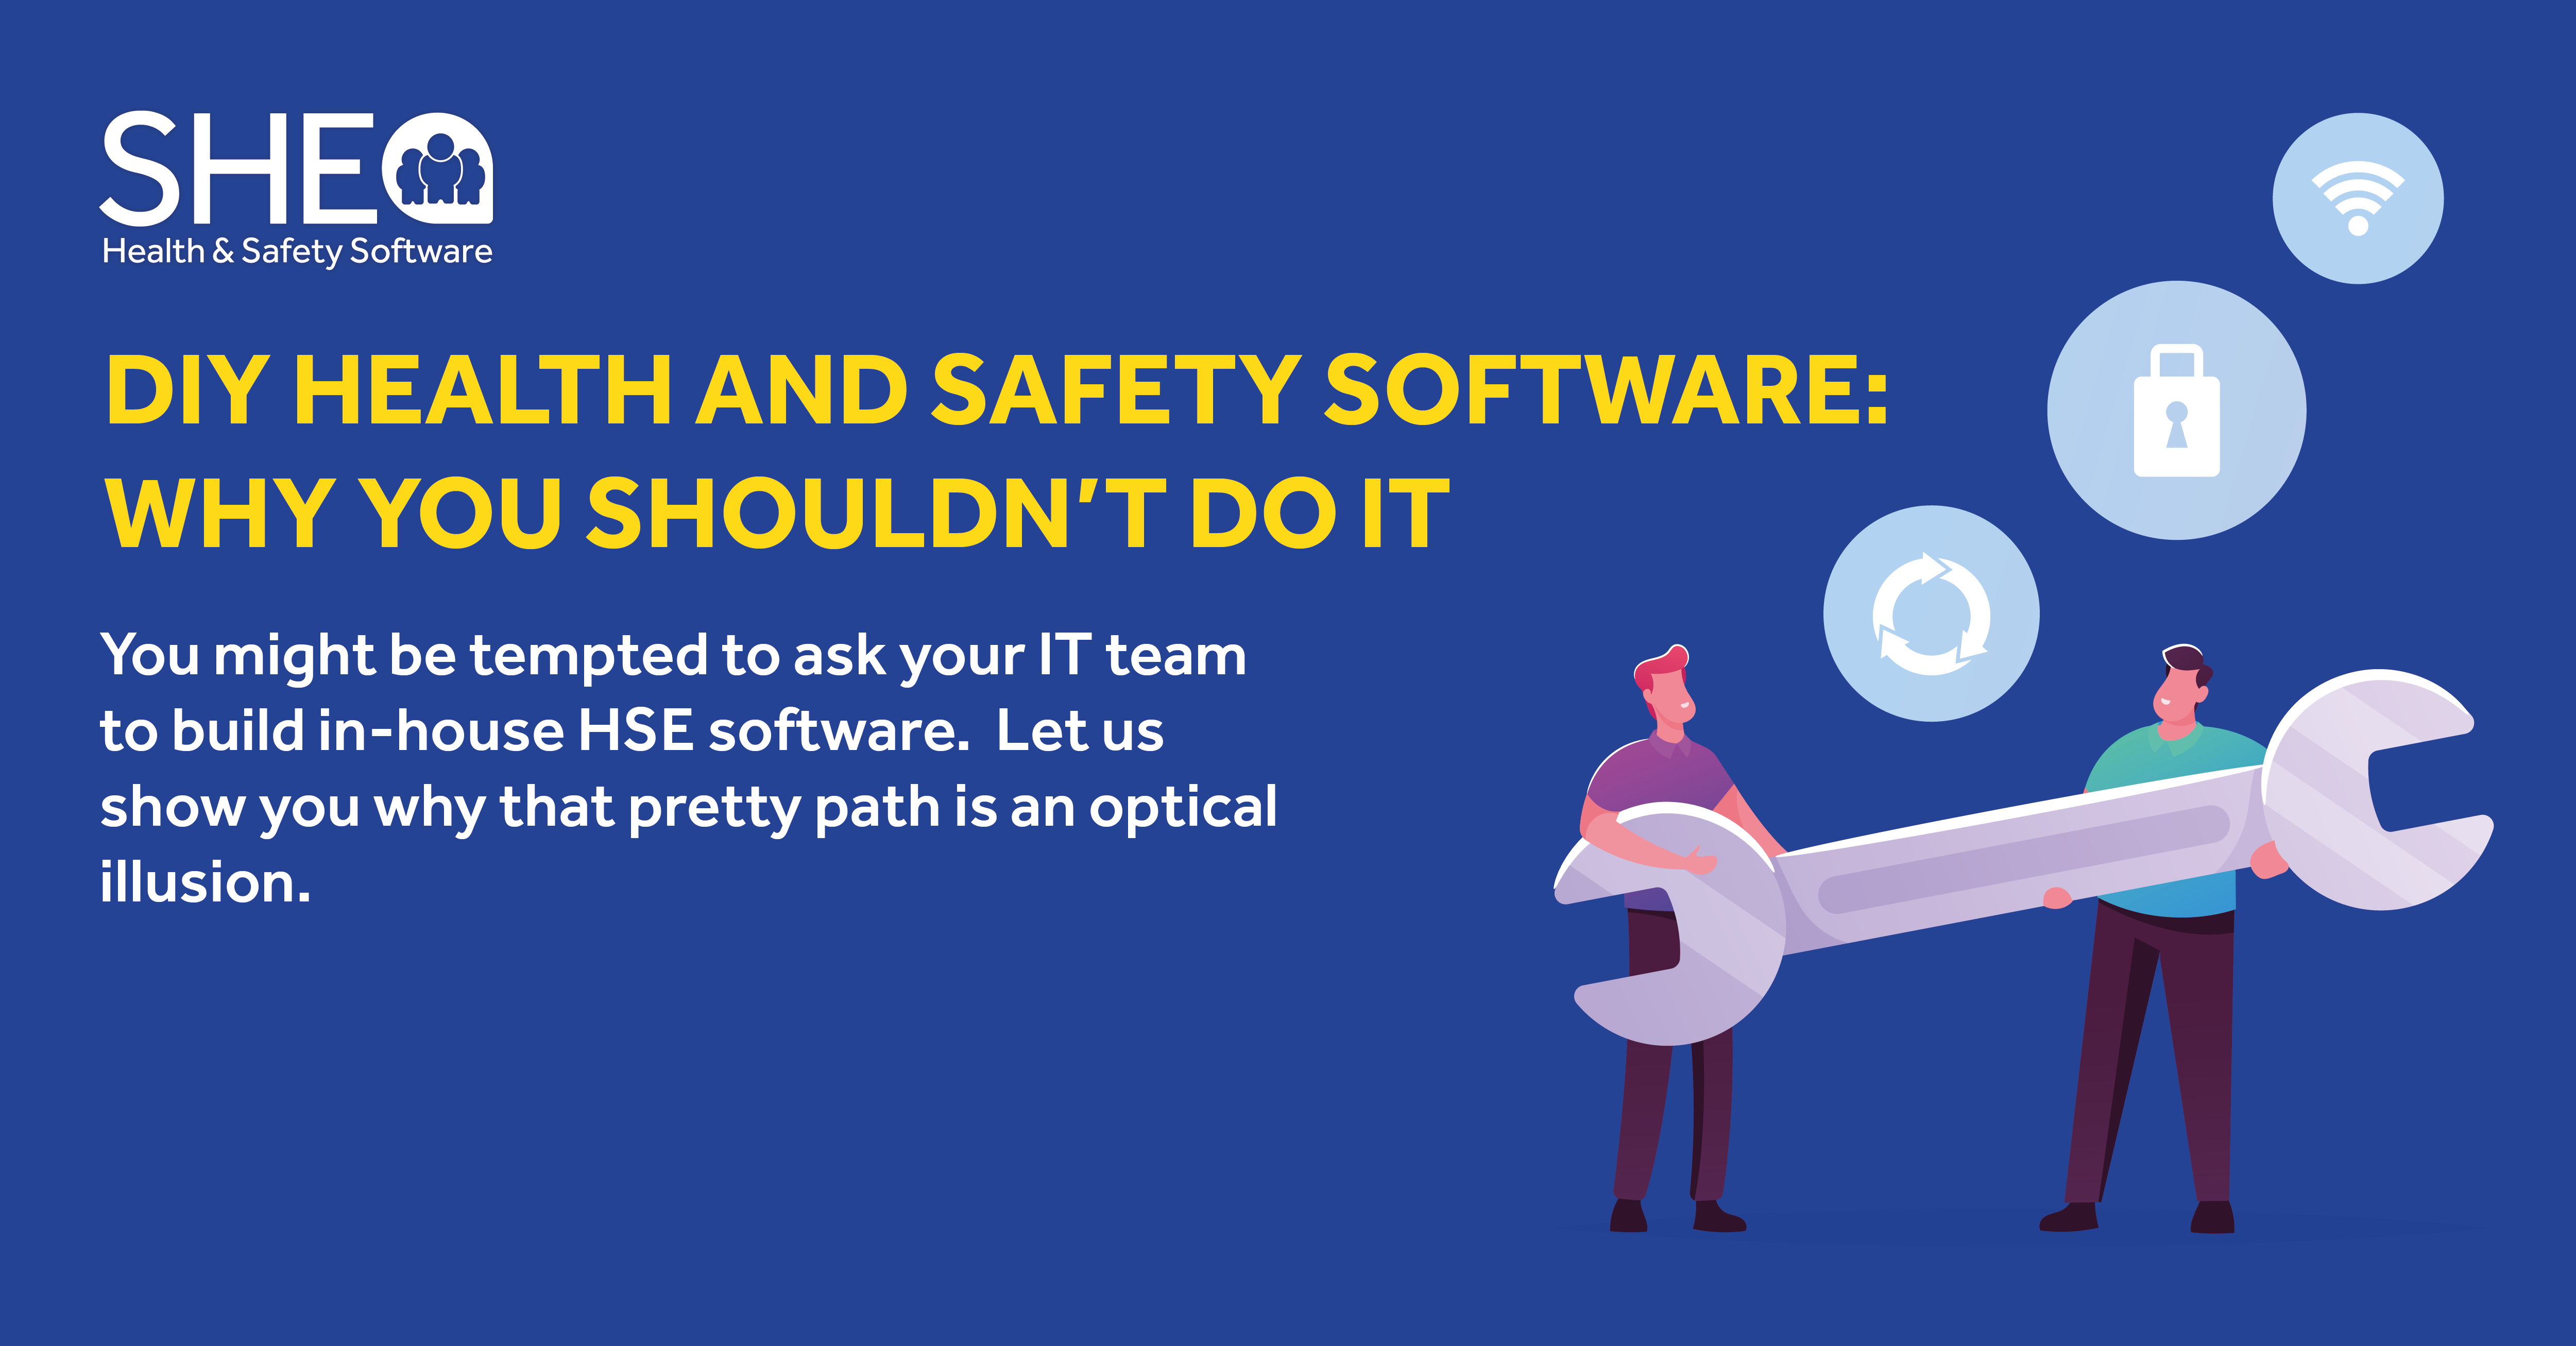 DIY health and safety software: Why you shouldn't do it